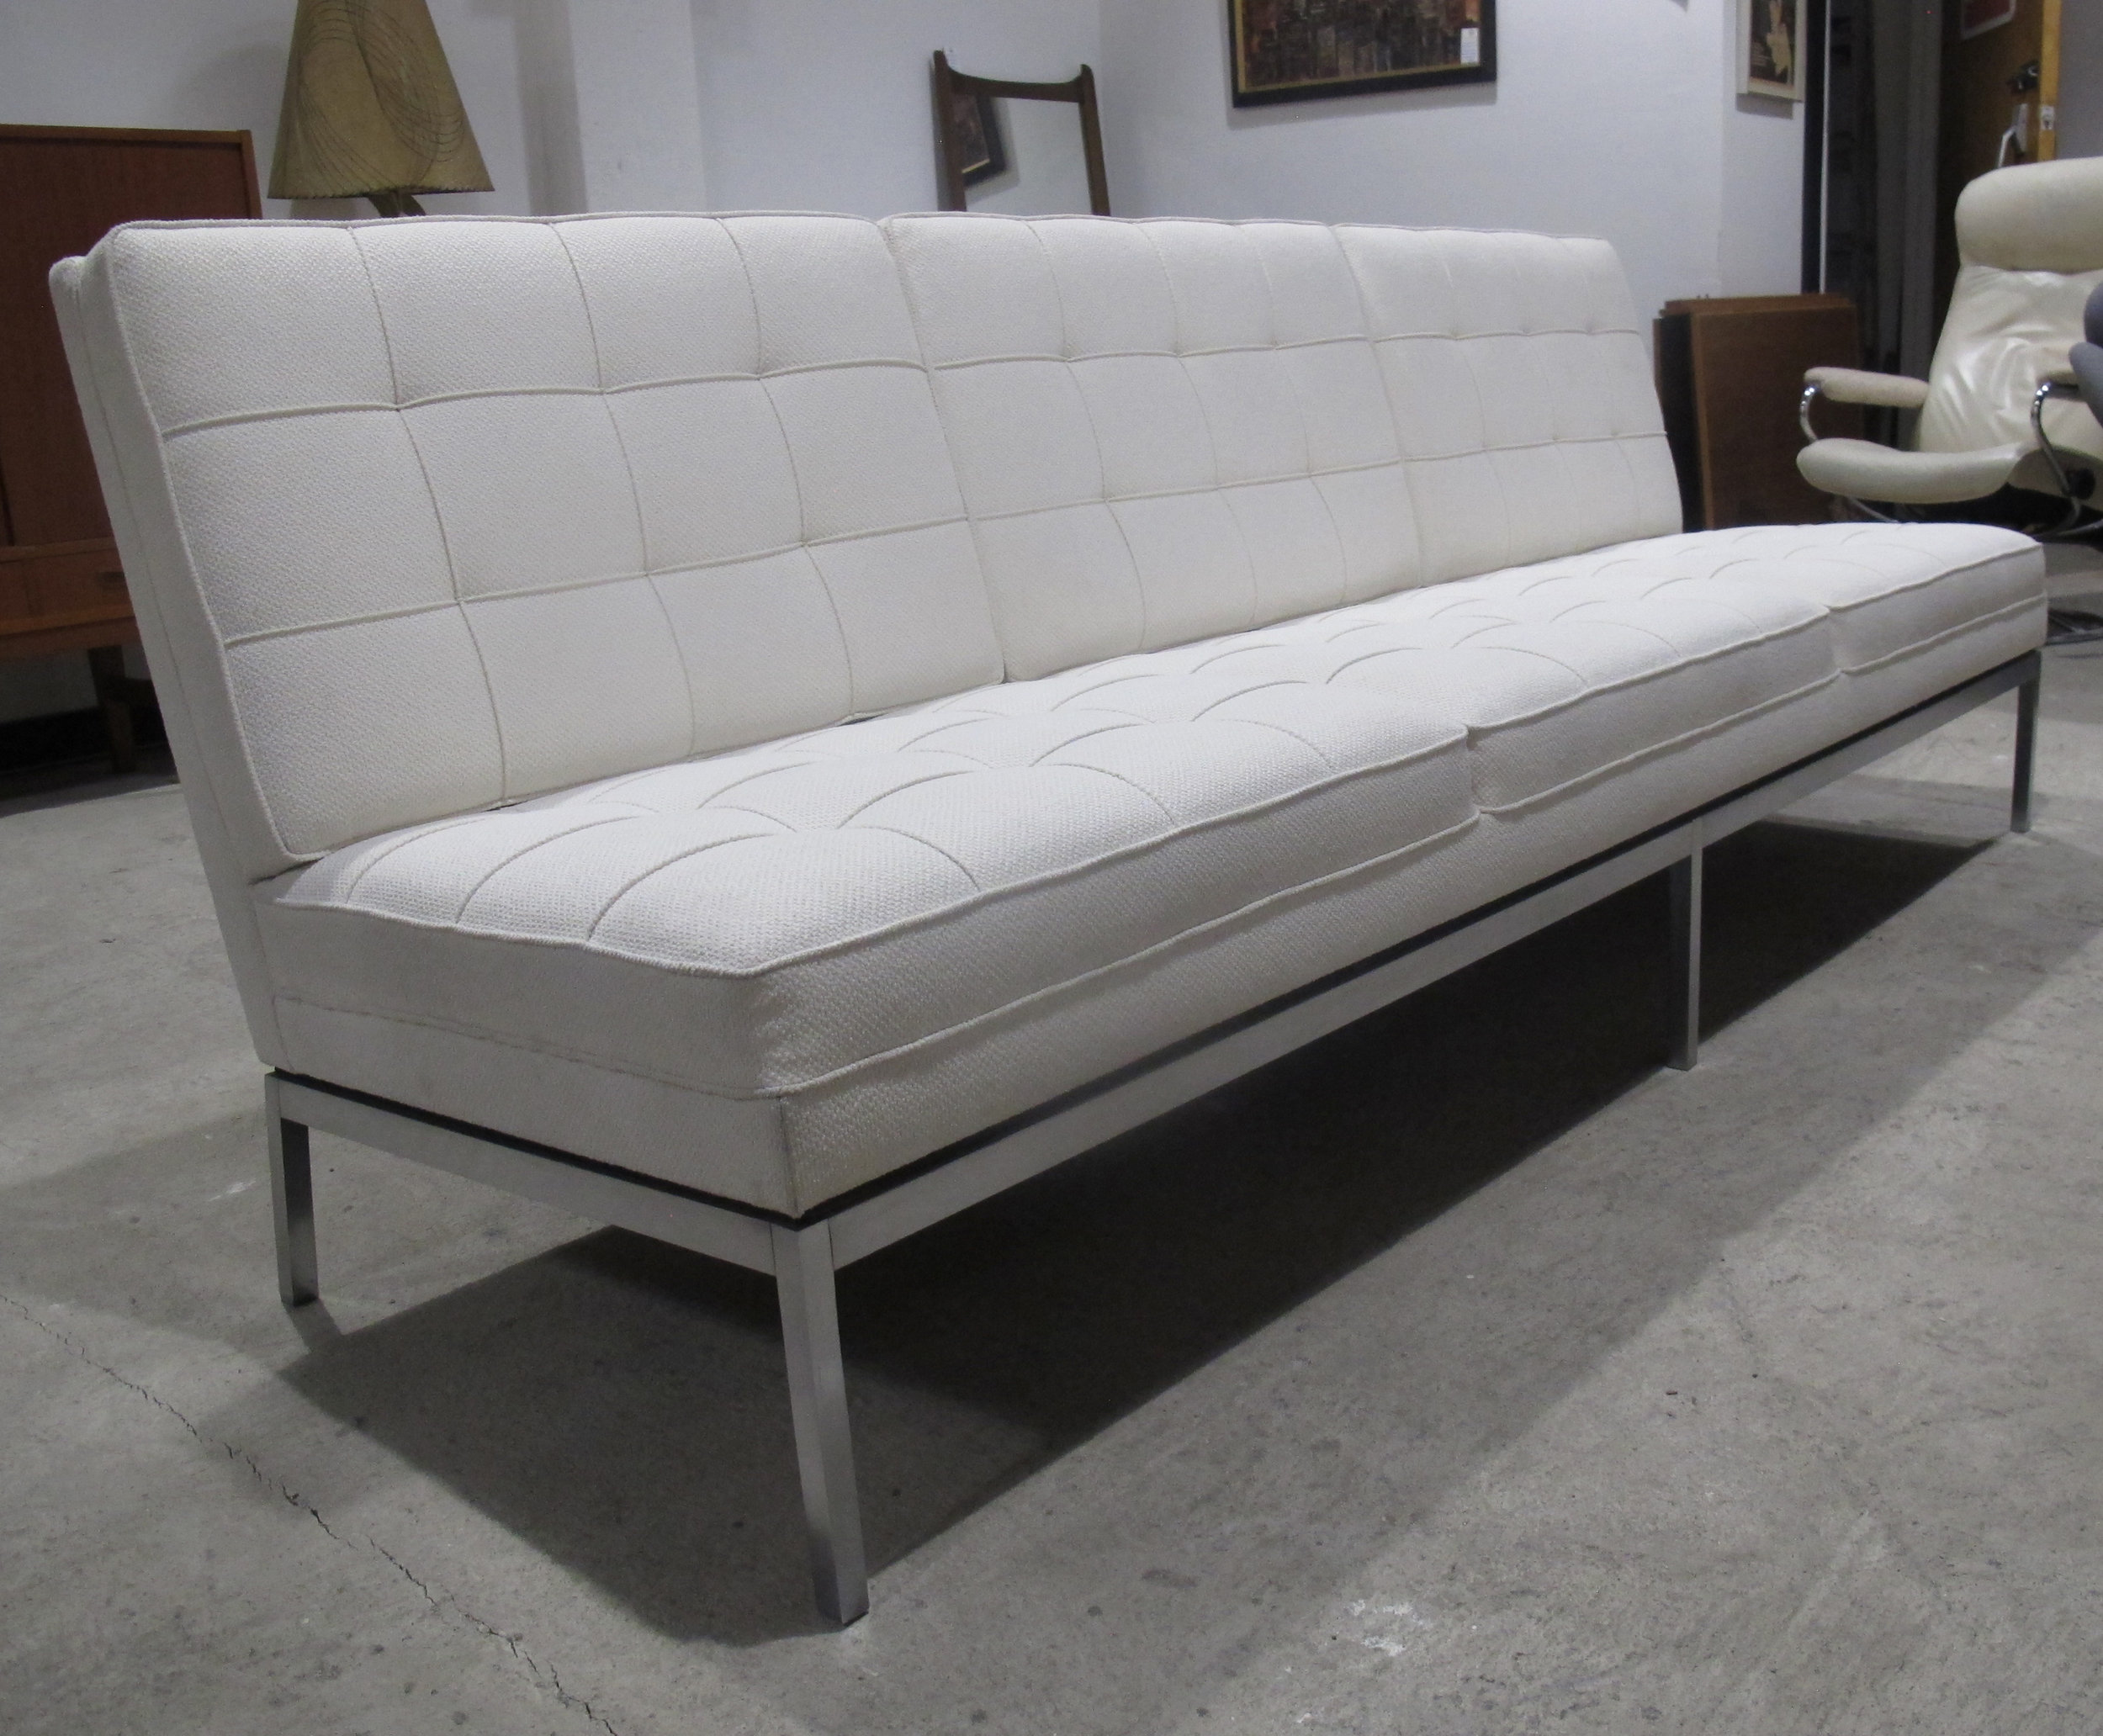 MID CENTURY FLORENCE KNOLL MODEL 67 ARMLESS WHITE UPHOLSTERED SOFA